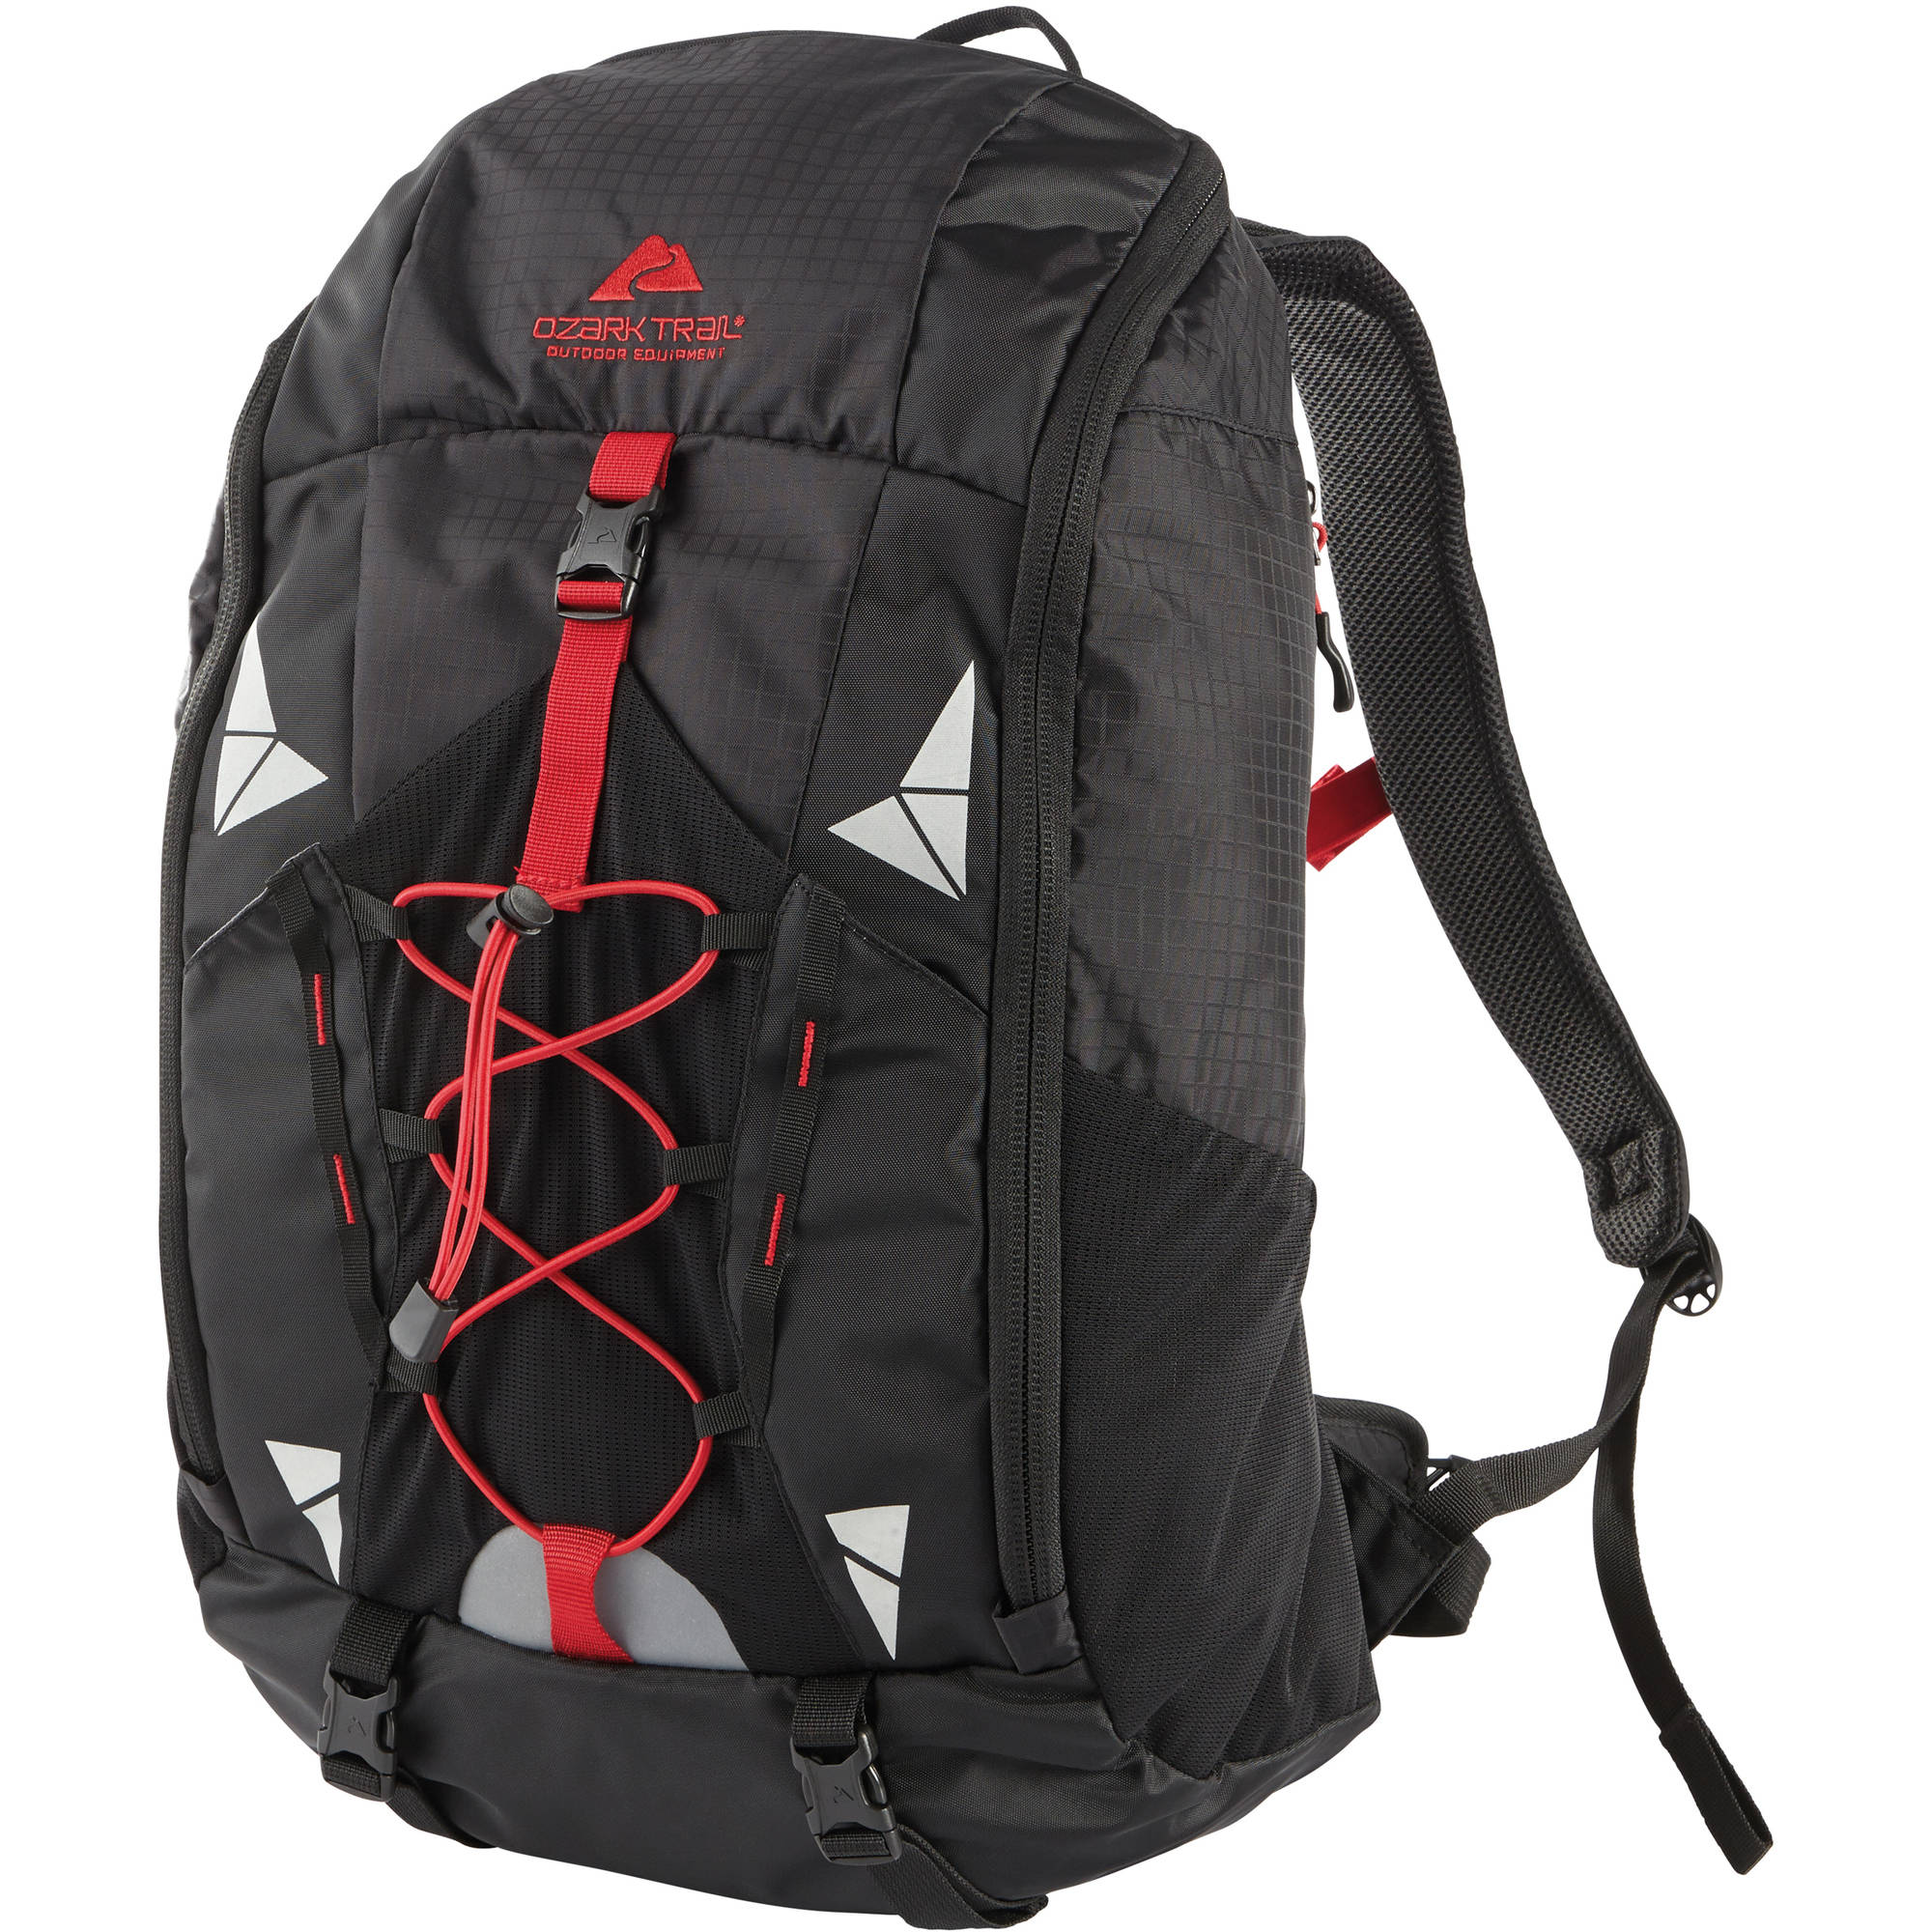 Ozark Trail 40L Crestone Backpack with Large Main Compartment